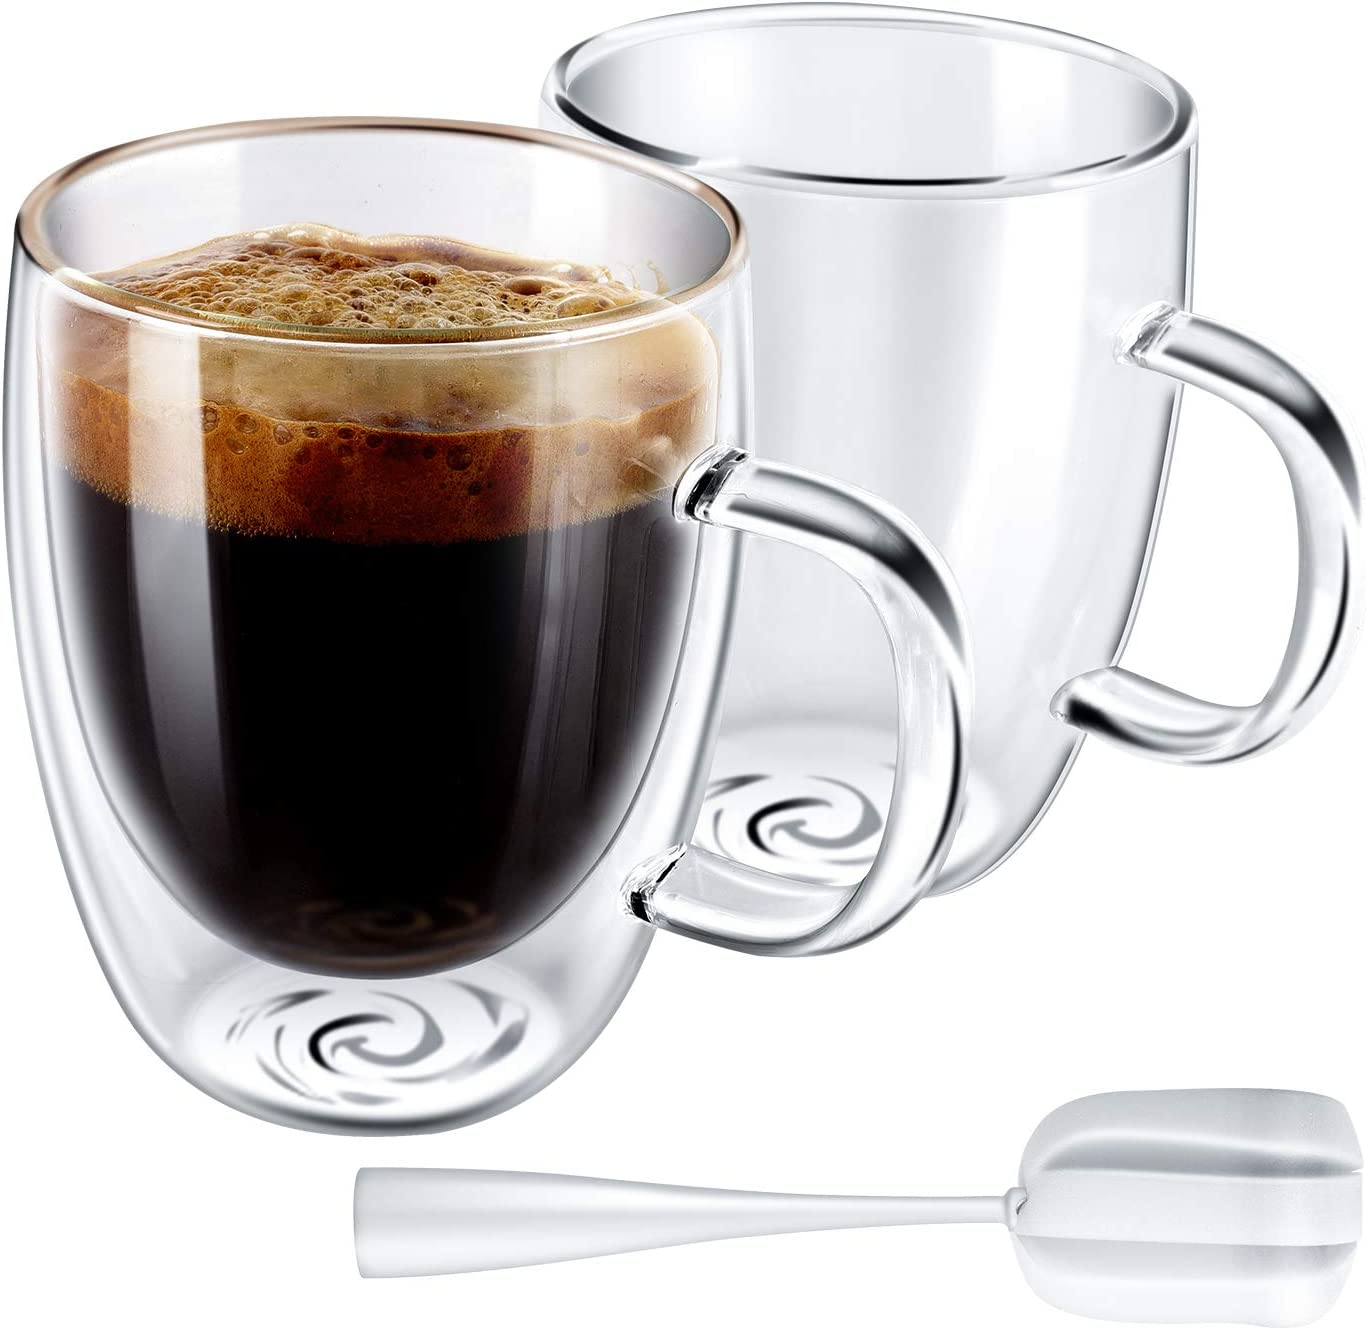 Yuncang Glass Coffee Mugs 2 Pack,Double Wall Insulated Glass Mugs Cups with Handle,Cappuccino Cups with Cleaning Brush,12 Ounces 350ml,Perfect for Americano,Latte,Beverage,Cappuccinos,Espresso Cups